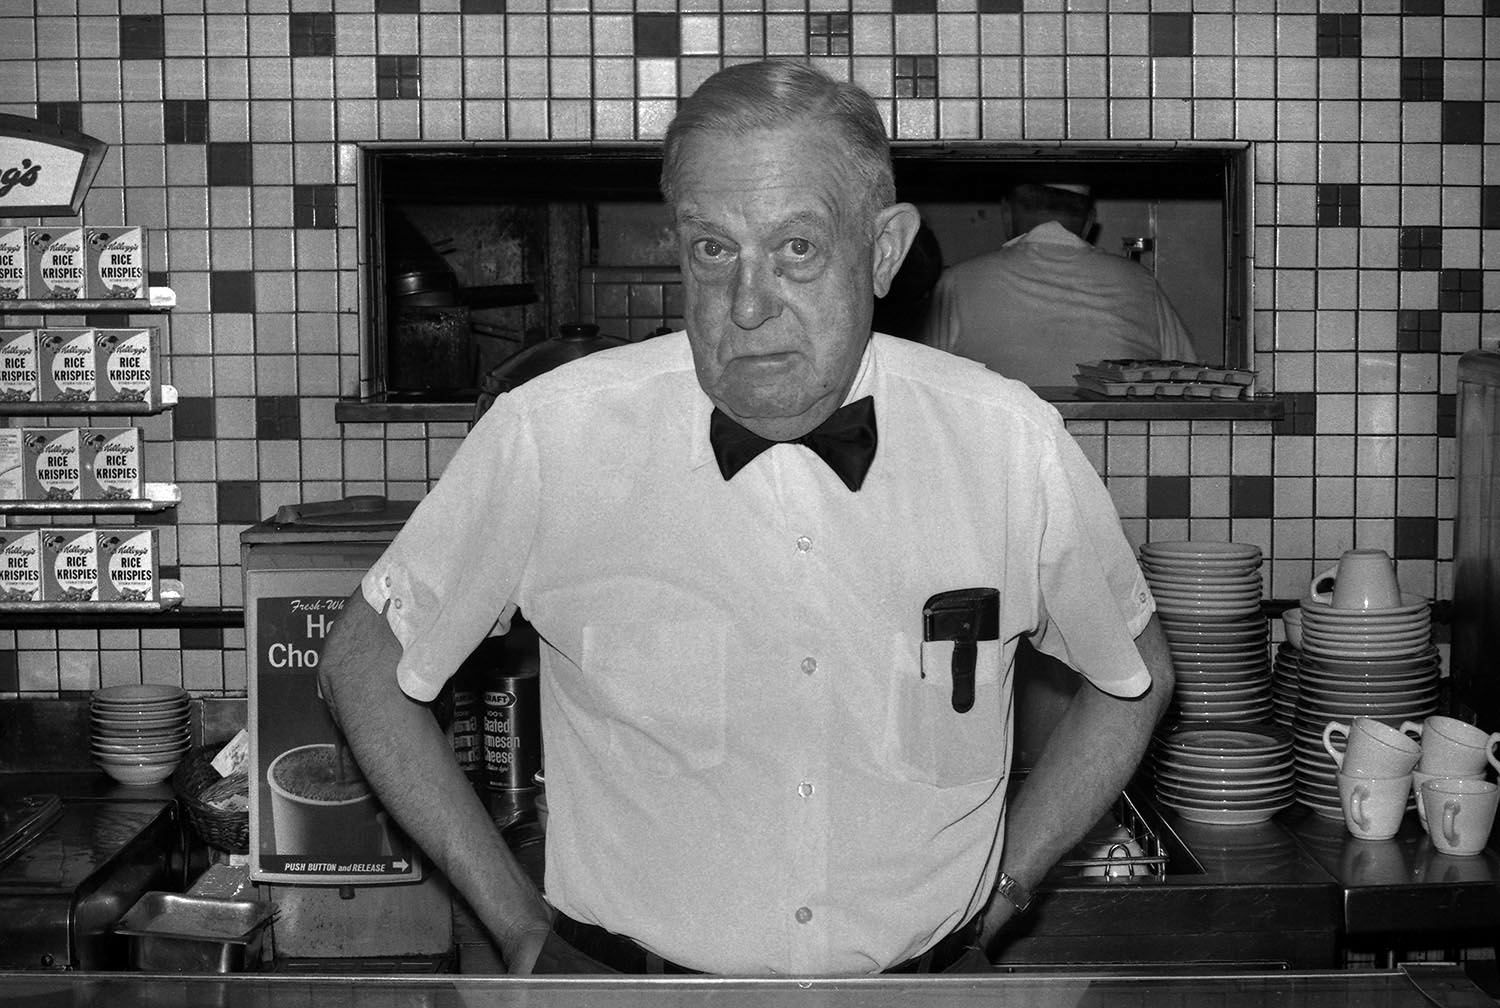 Manager of Restaurant, 1975